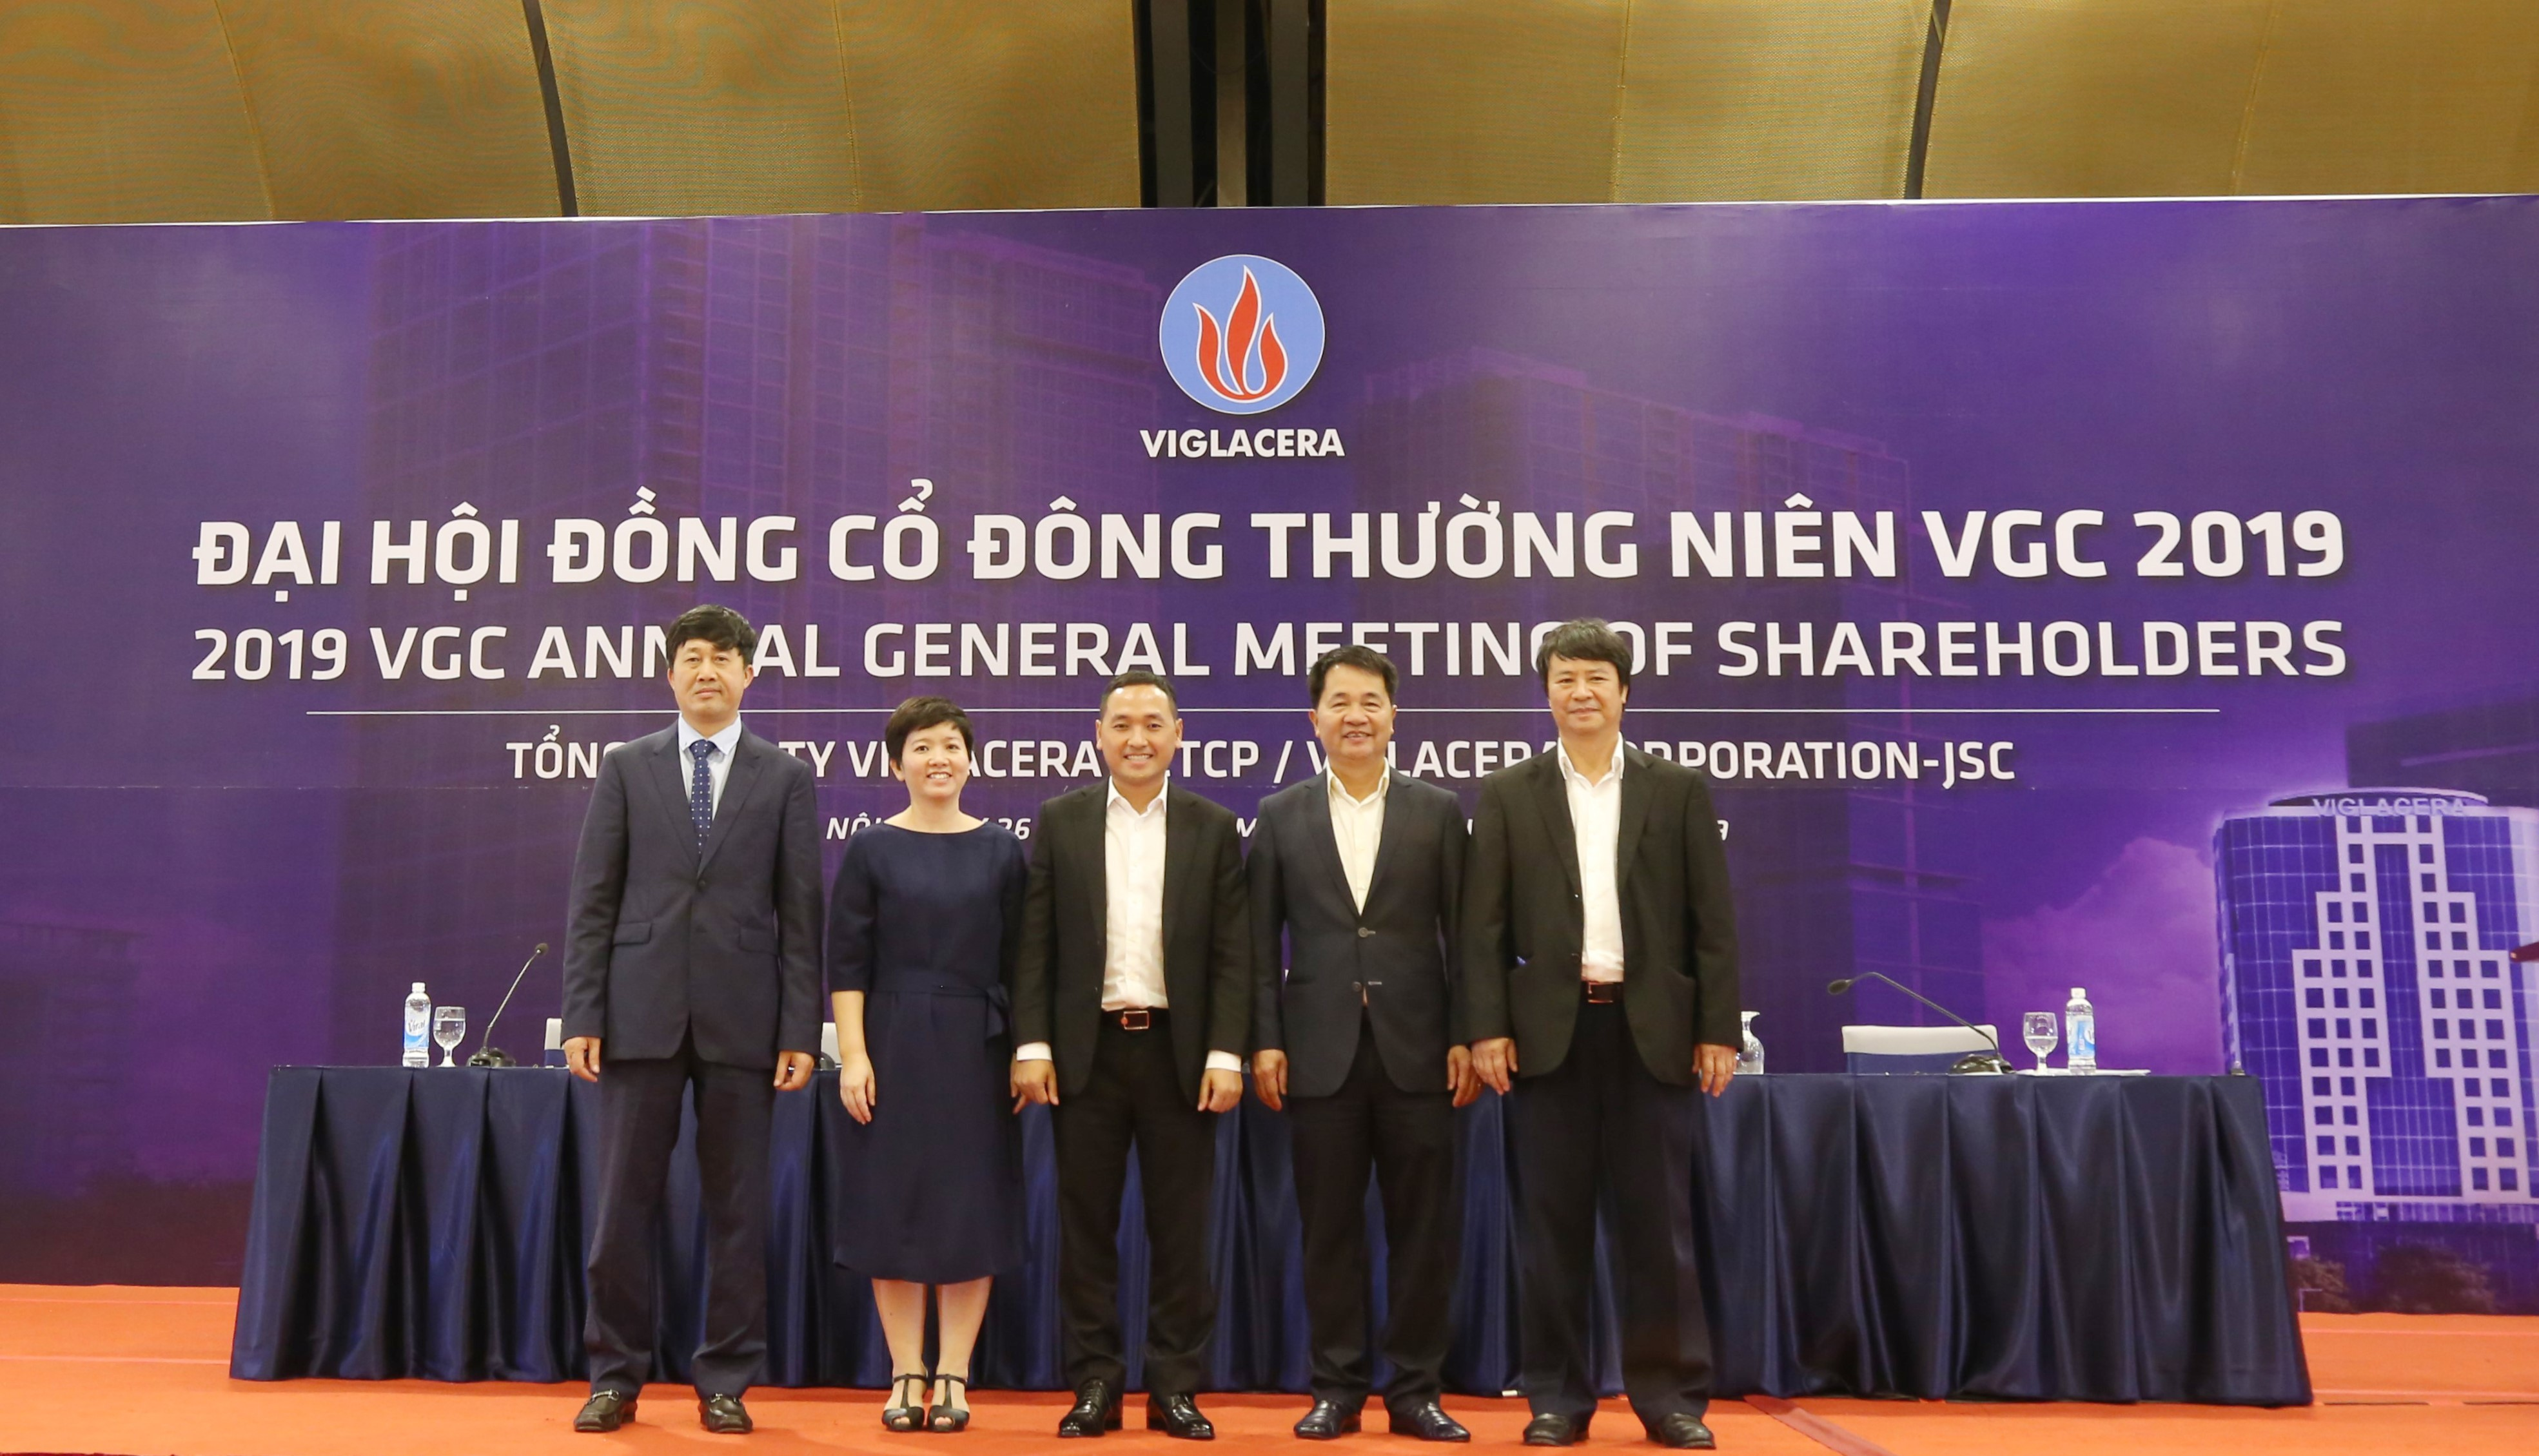 Annual Shareholders Meeting 2019 of Viglacera was successfully organized and set a good start for the new term 2019-2024.